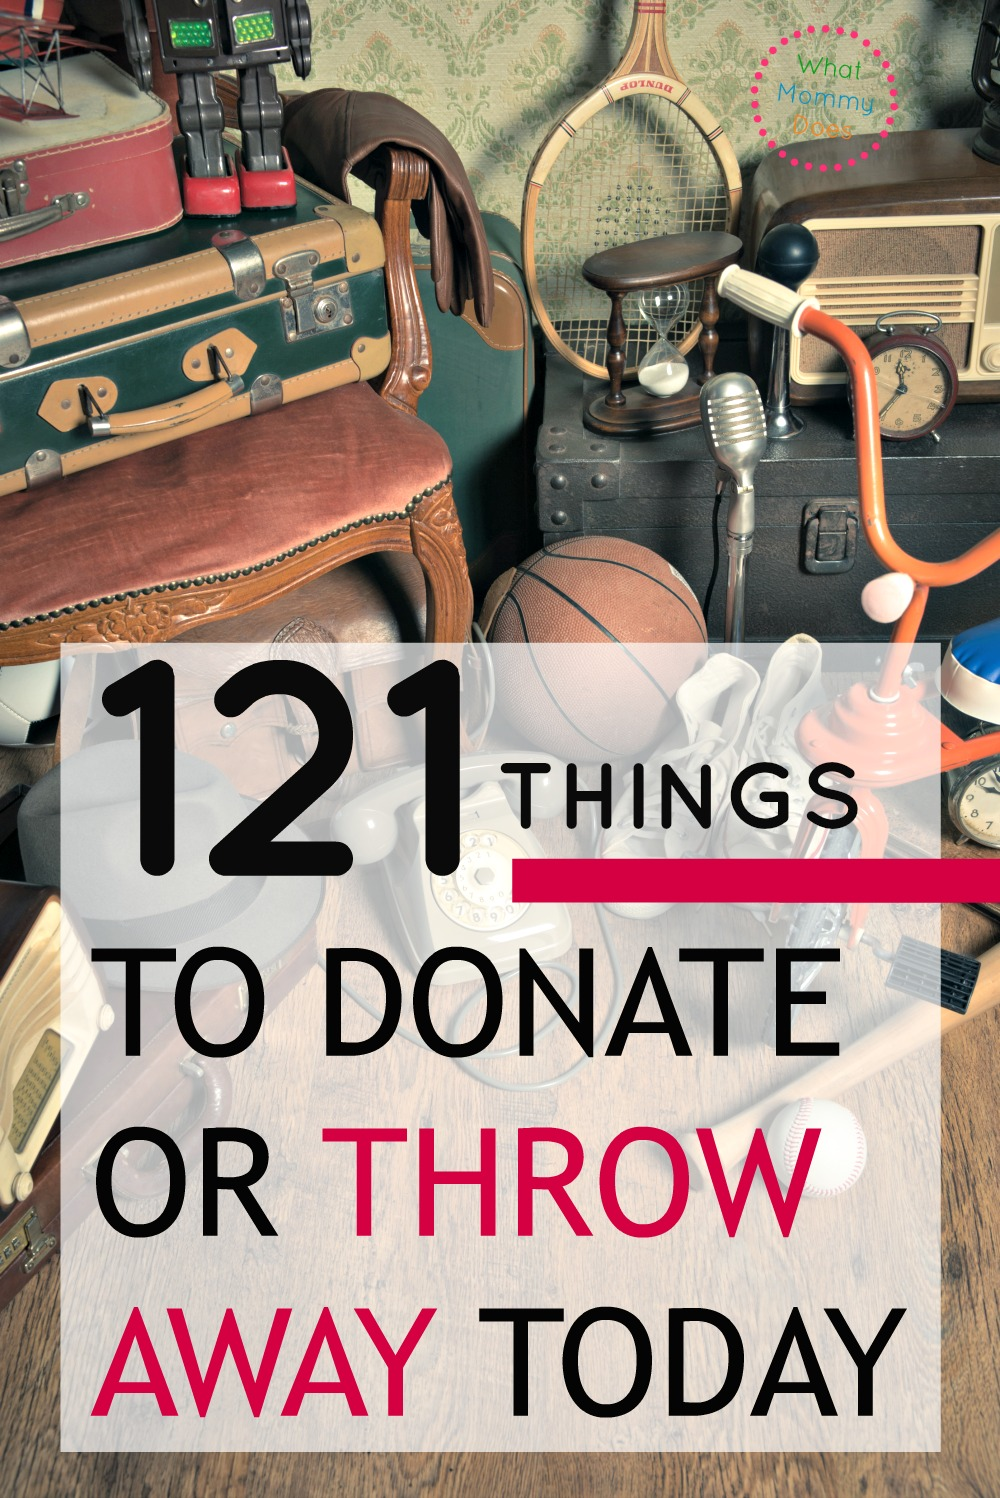 This list of over 100 things to throw away or donate now will get your home decluttered today!! Don't waste another minute on useless stuff, take control of your household again!! You'll feel so much better when your house is orderly, neat, and tidy!